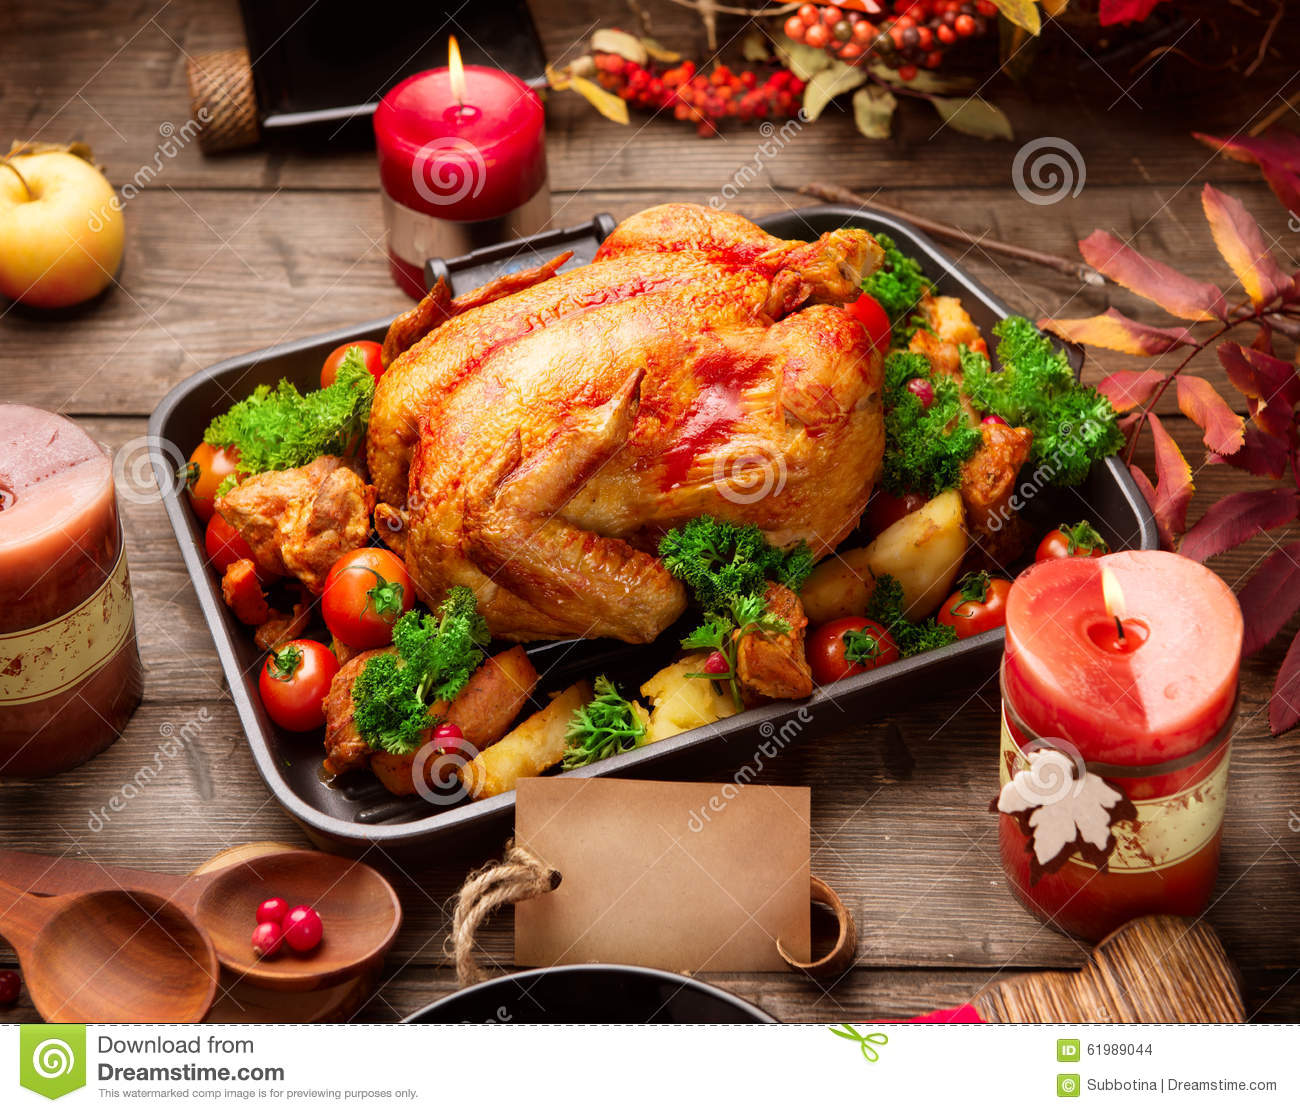 Roasted turkey garnished with potato. Thanksgiving or Christmas dinner